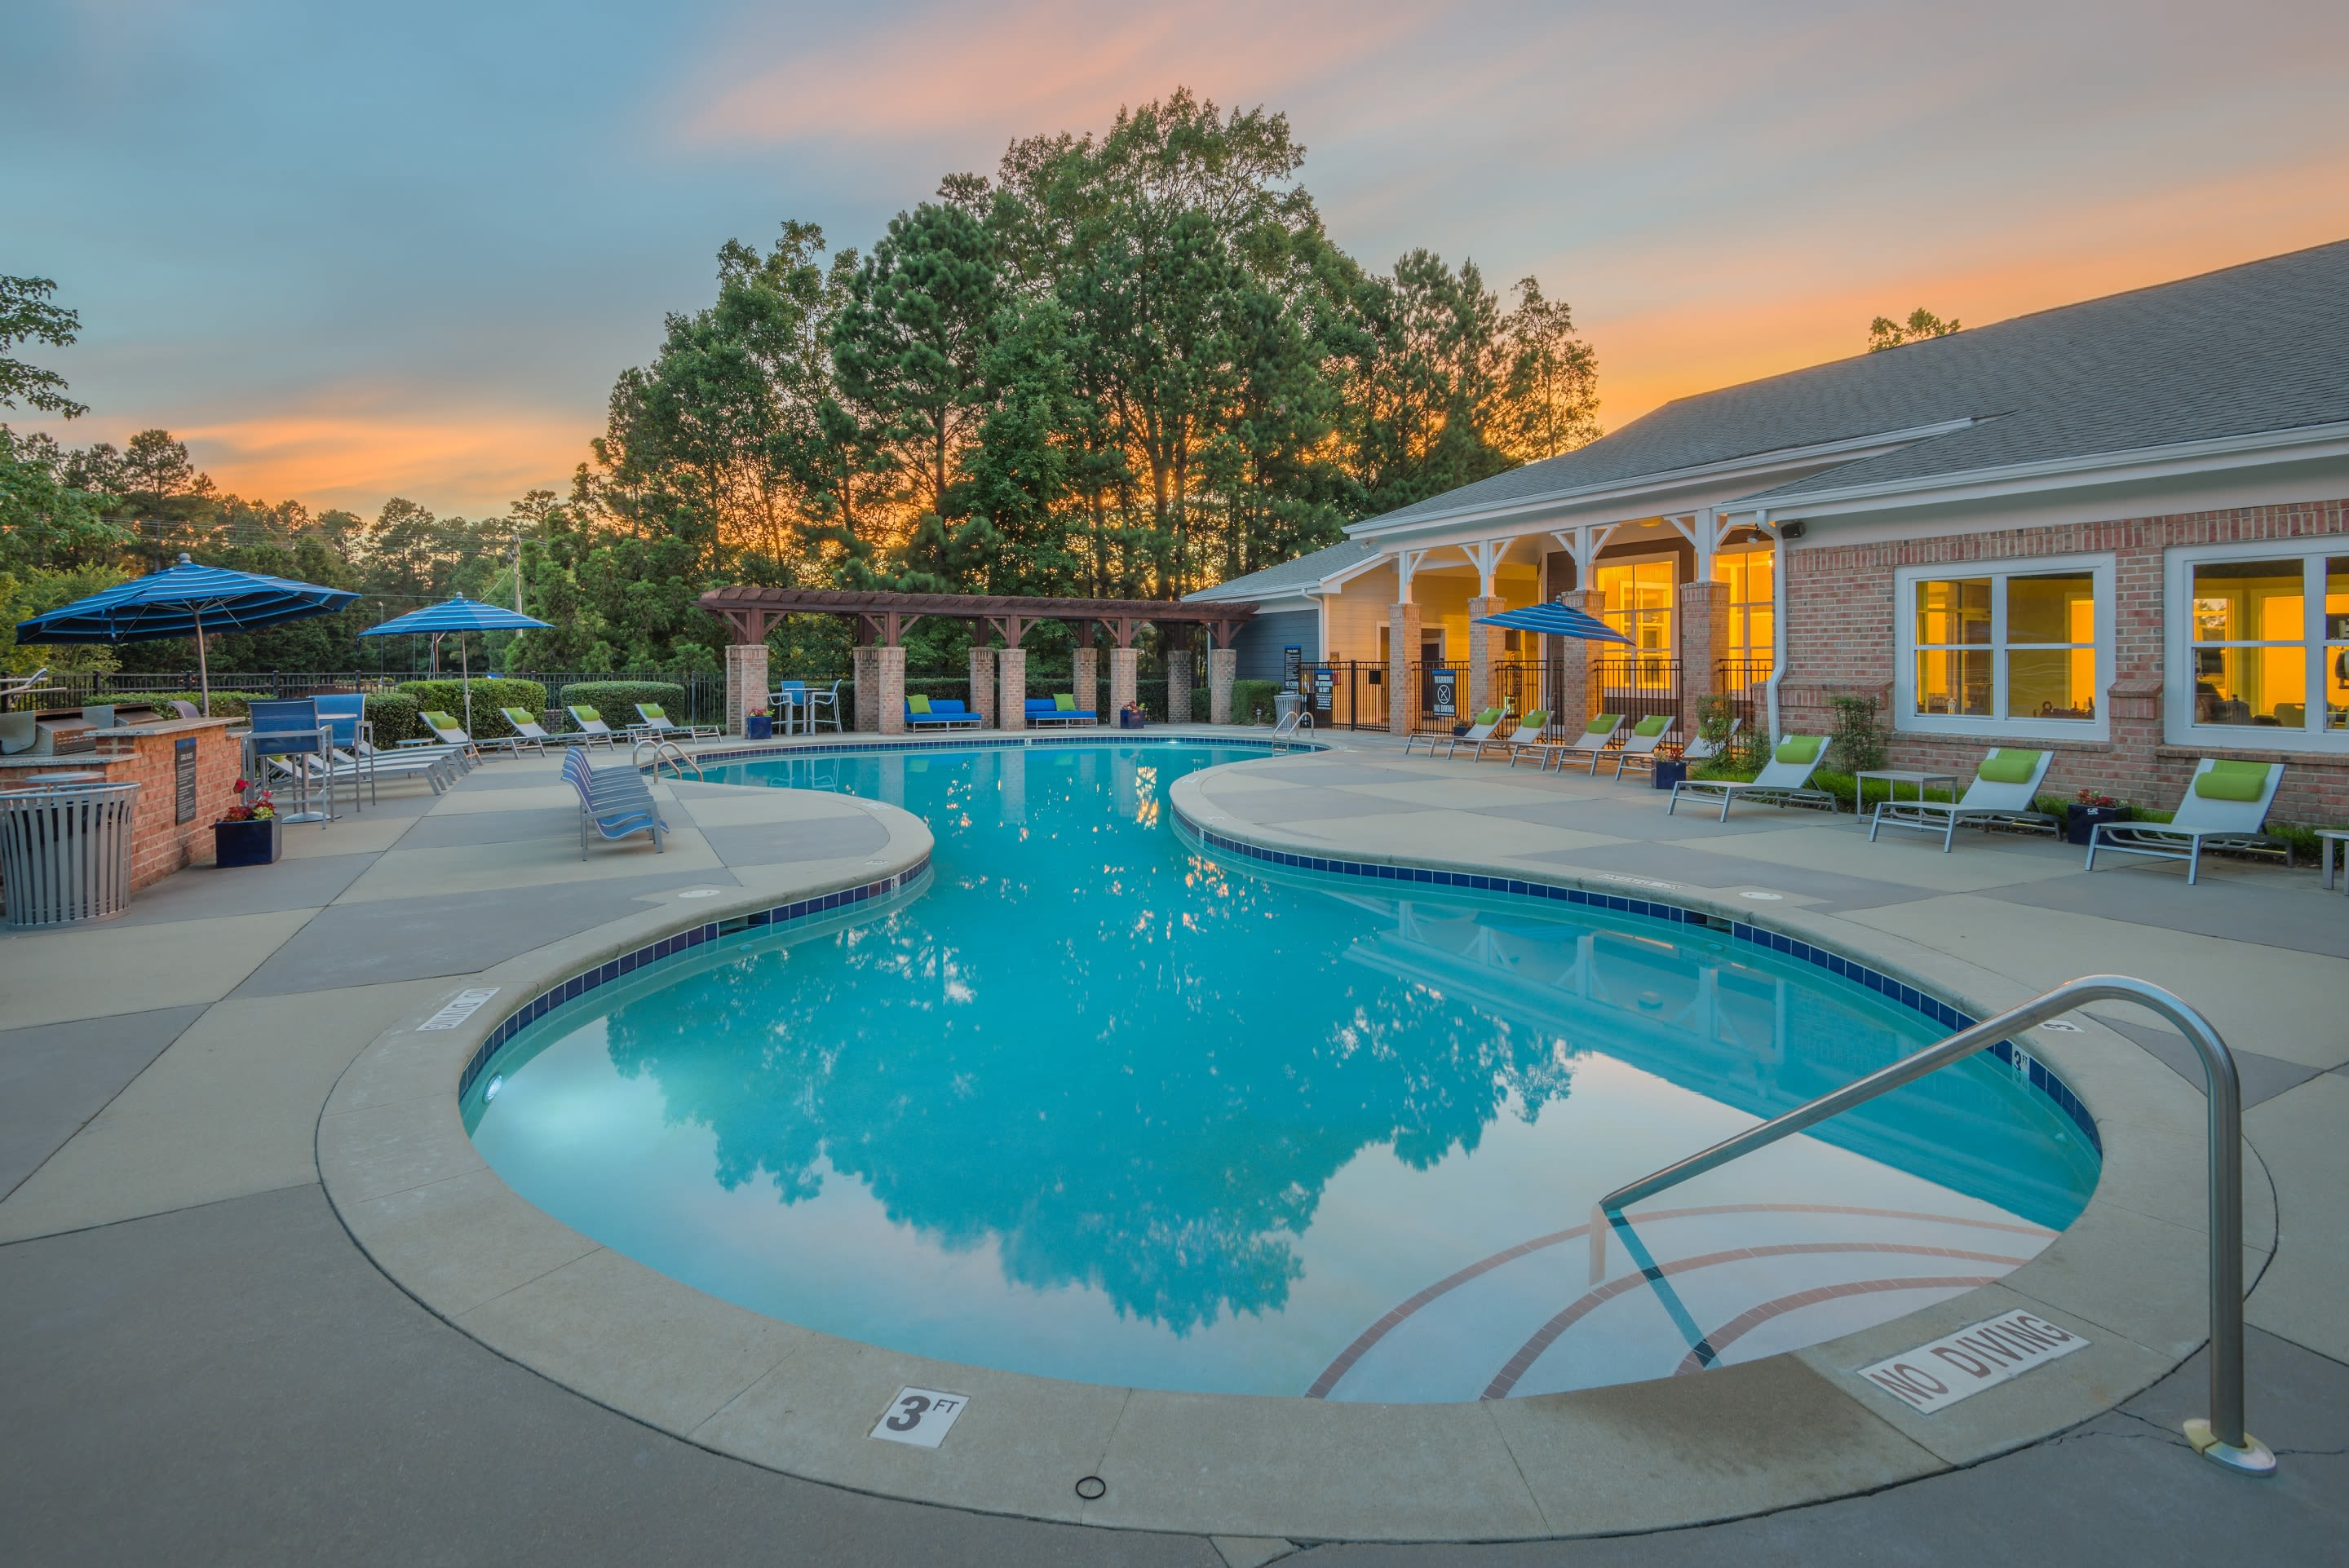 200 East offers an outdoor swimming pool in Durham, NC